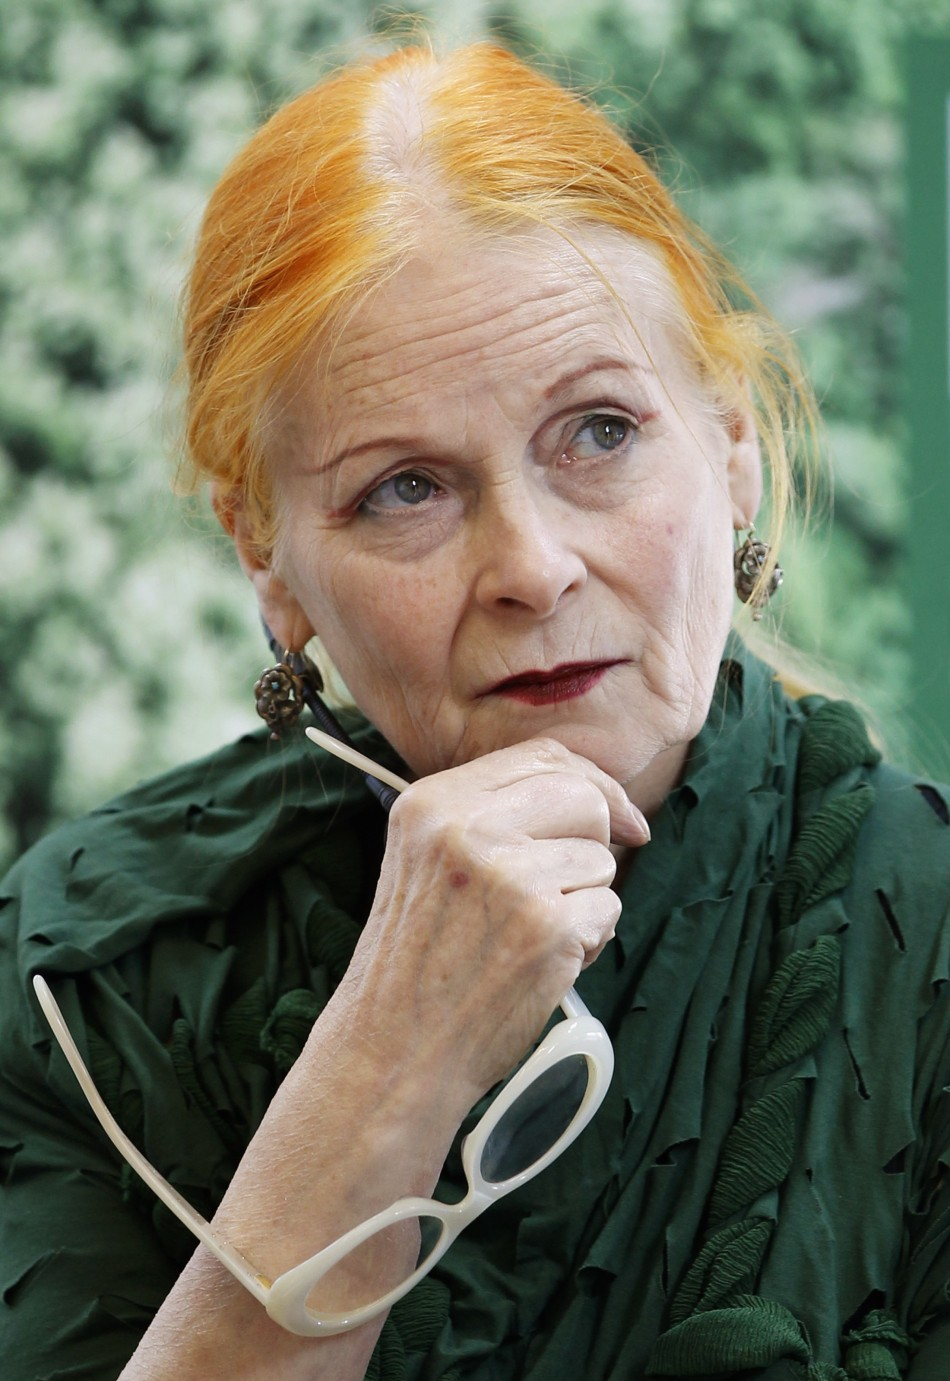 climate change vivienne westwood donates 1m to save planet. Black Bedroom Furniture Sets. Home Design Ideas